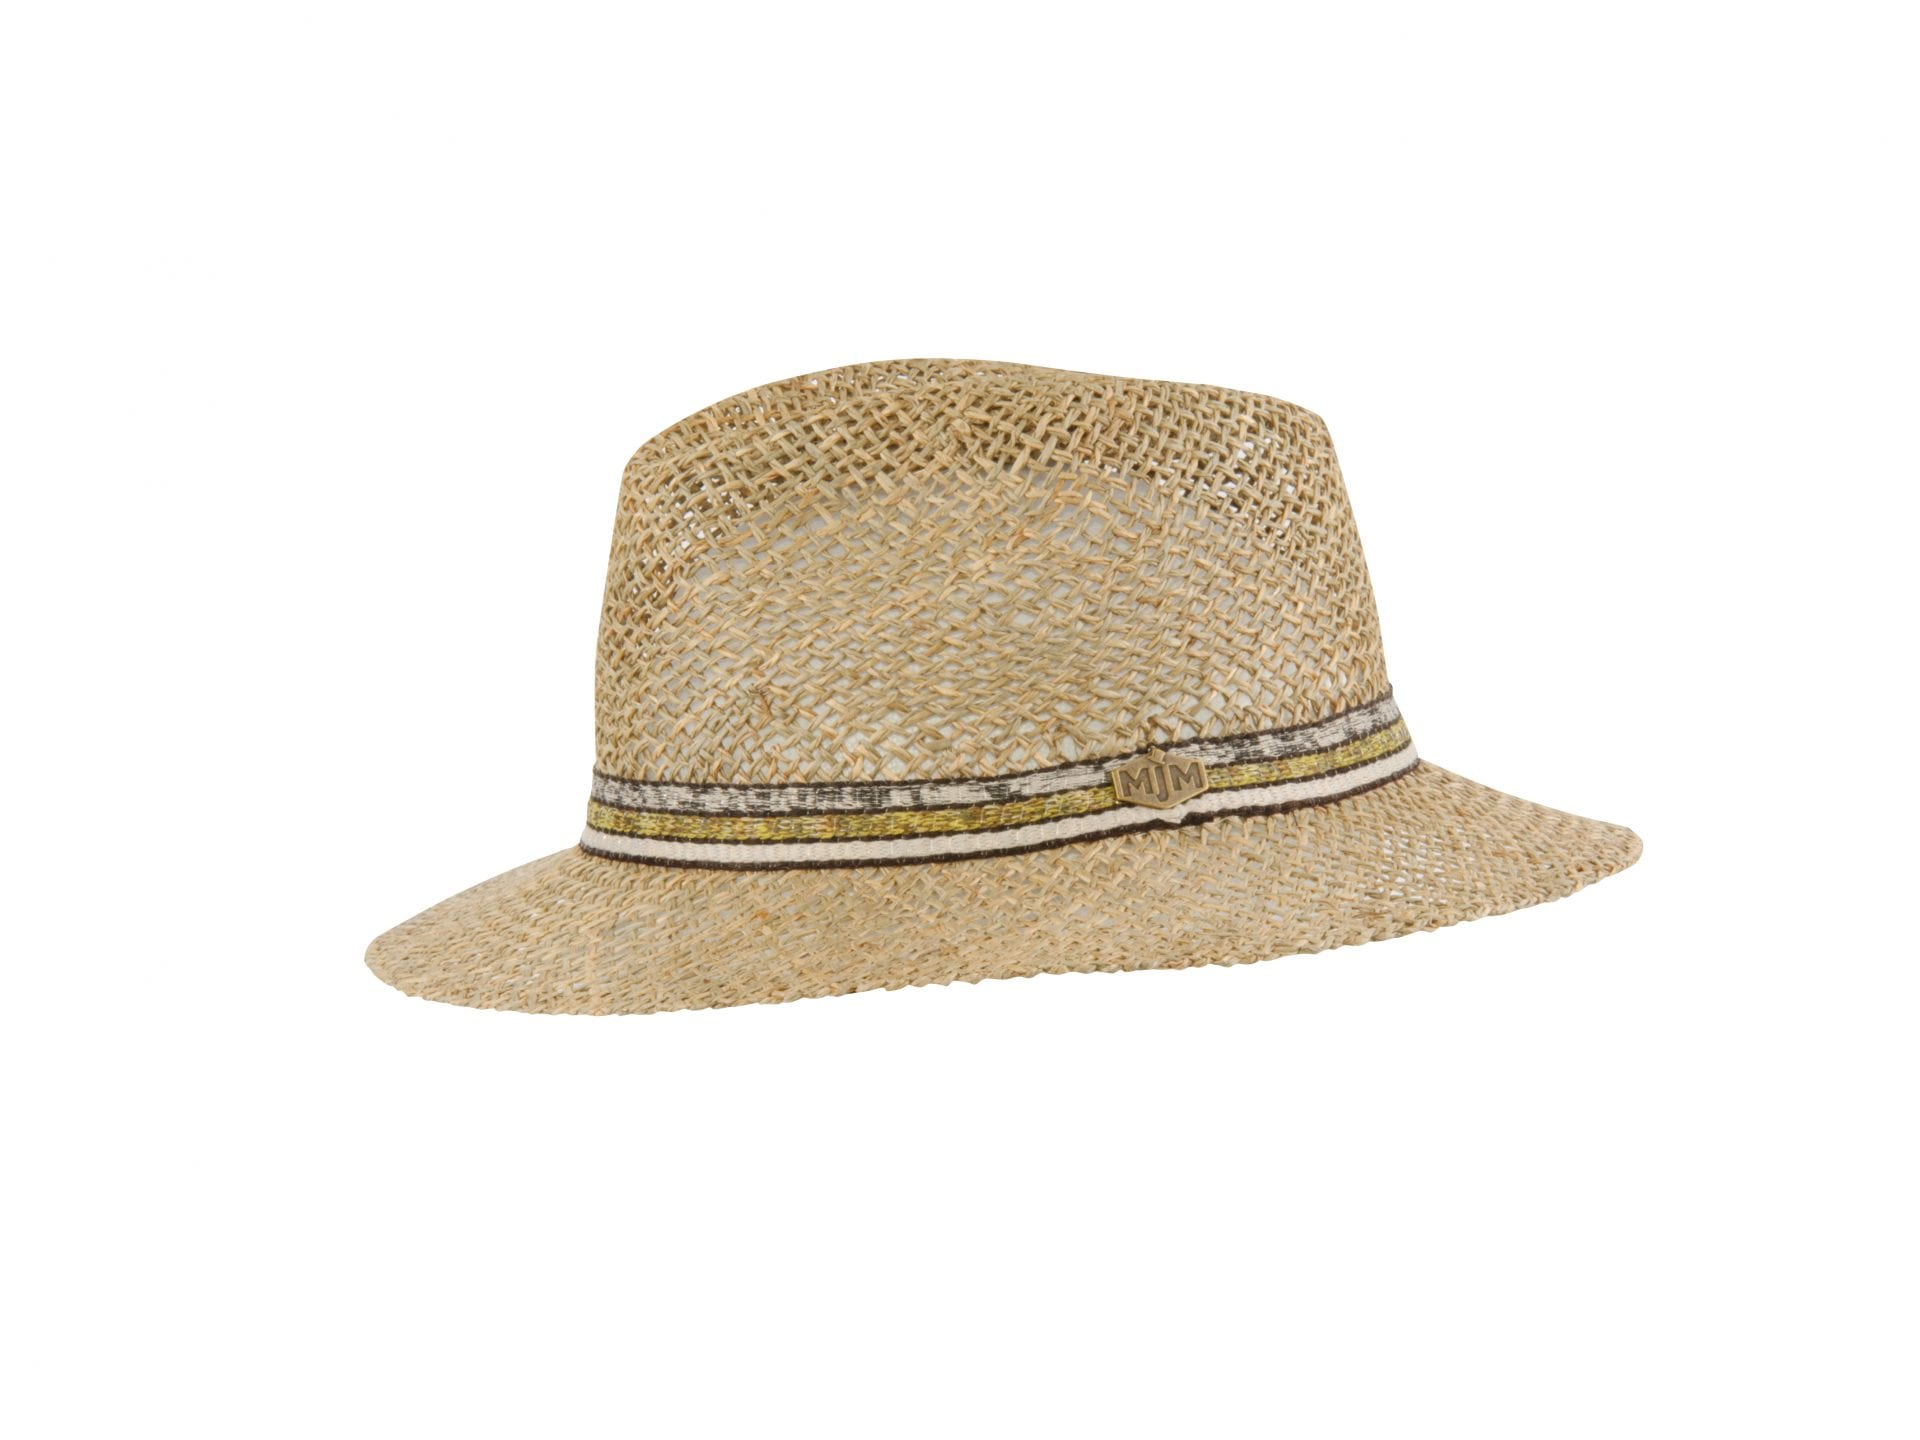 MJM Hats Air 100% Straw Natural - Netnaturshop